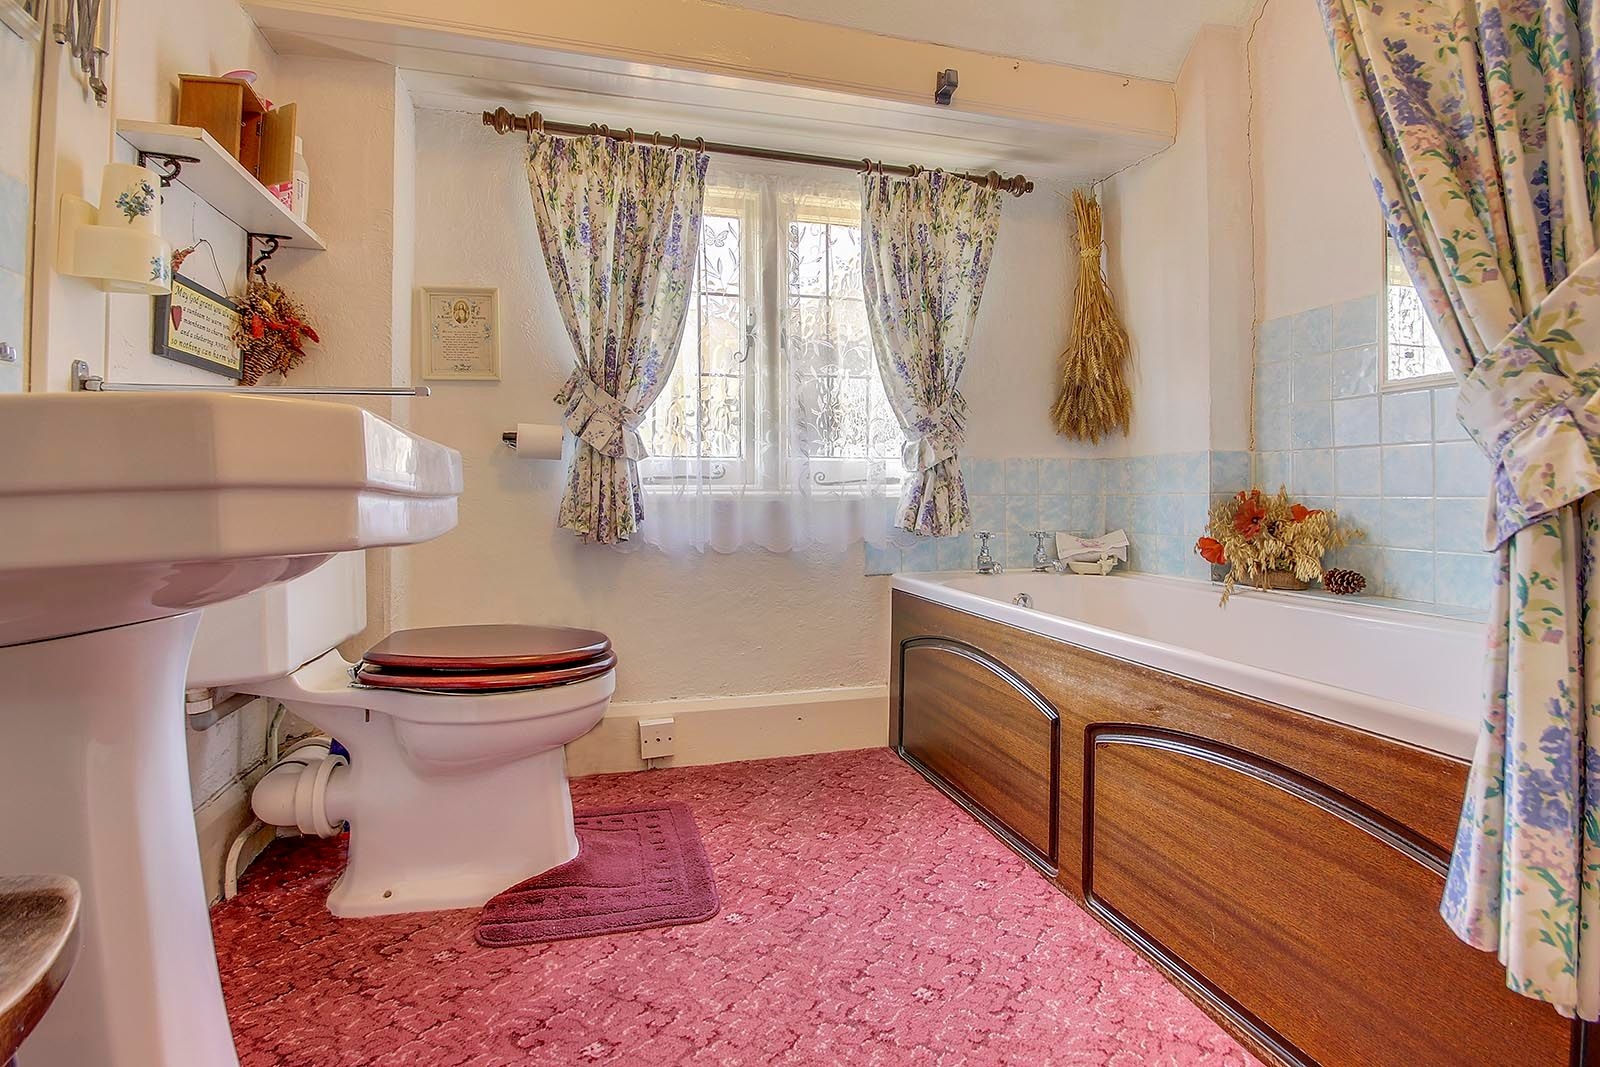 2 bed House for sale in Arundel - Bathroom (Property Image 5)